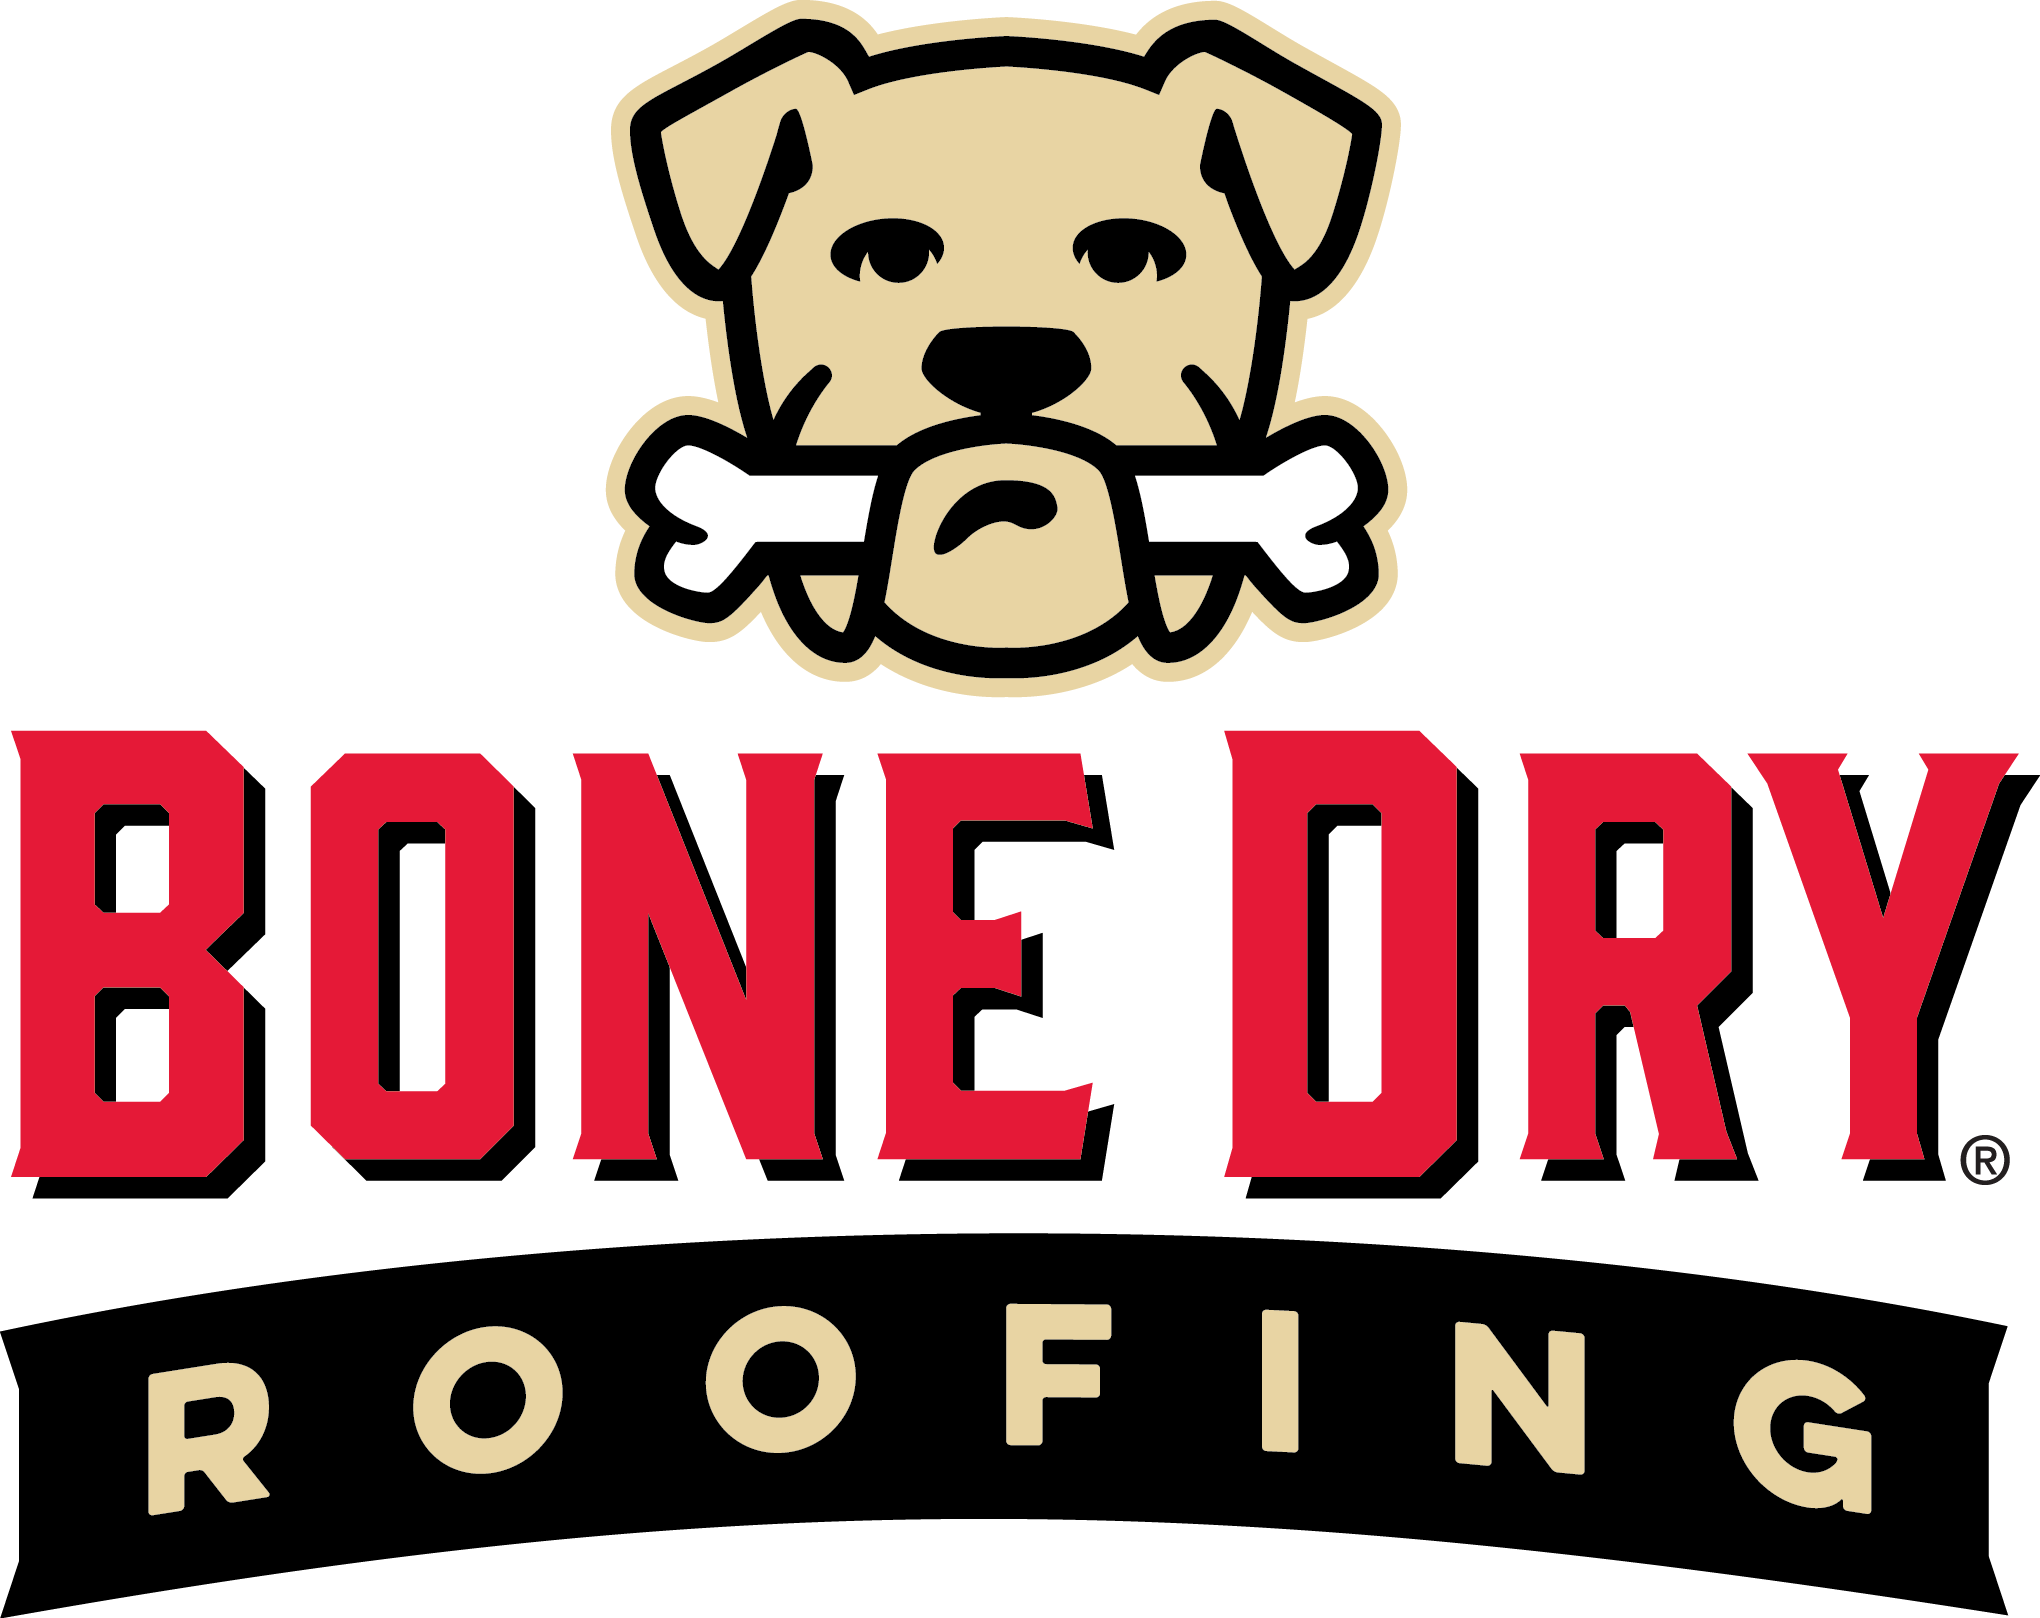 Bone Dry Roofing Provides Premier Roofing Services in Maryland Heights, MO